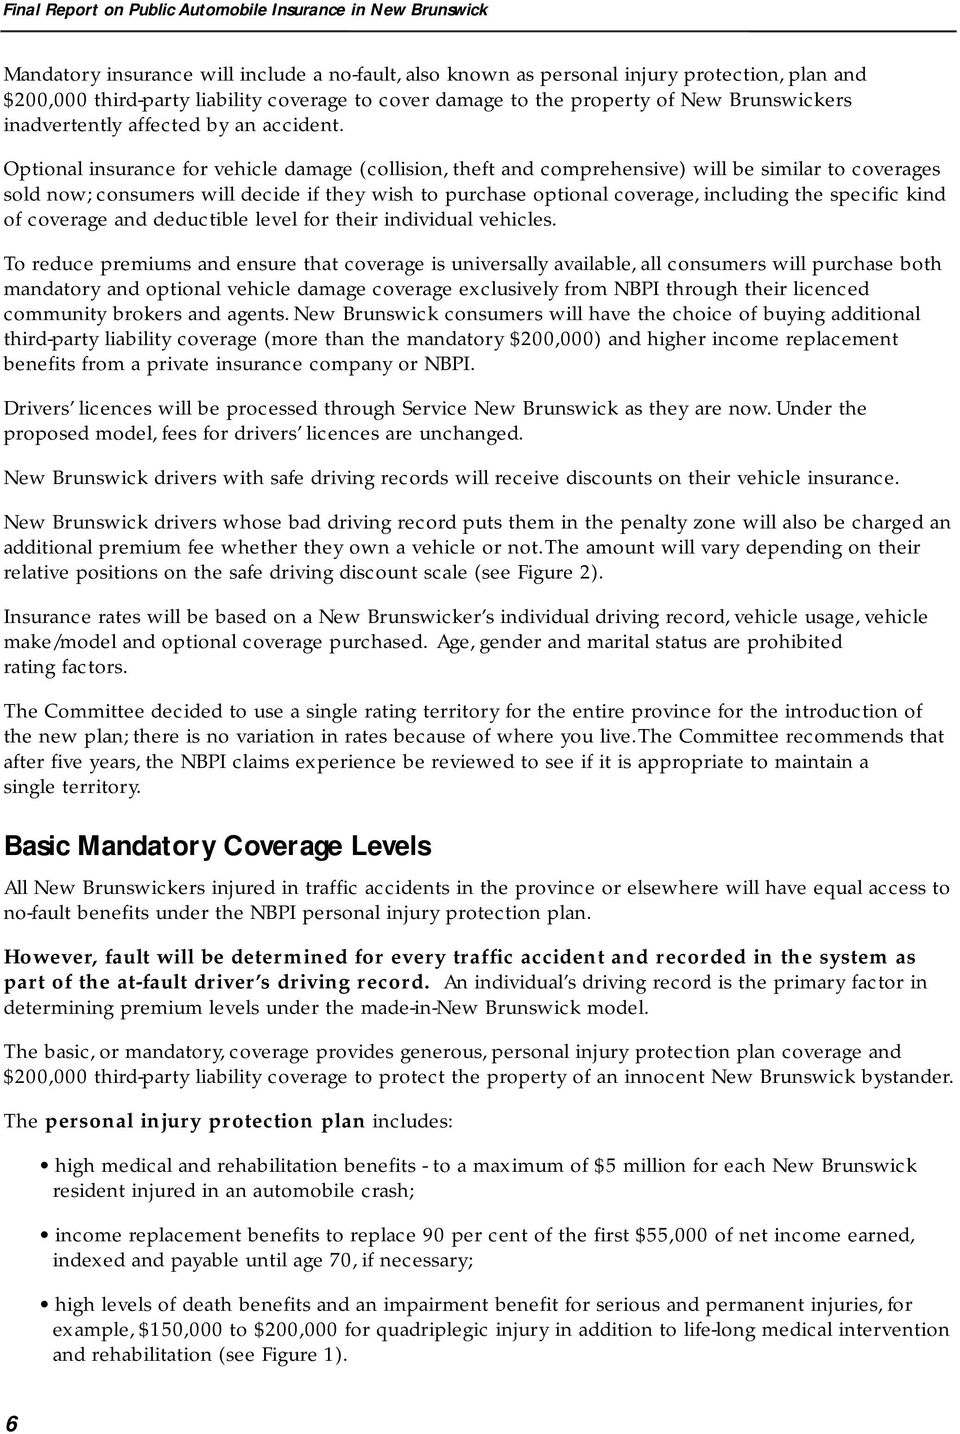 Optional insurance for vehicle damage (collision, theft and comprehensive) will be similar to coverages sold now; consumers will decide if they wish to purchase optional coverage, including the